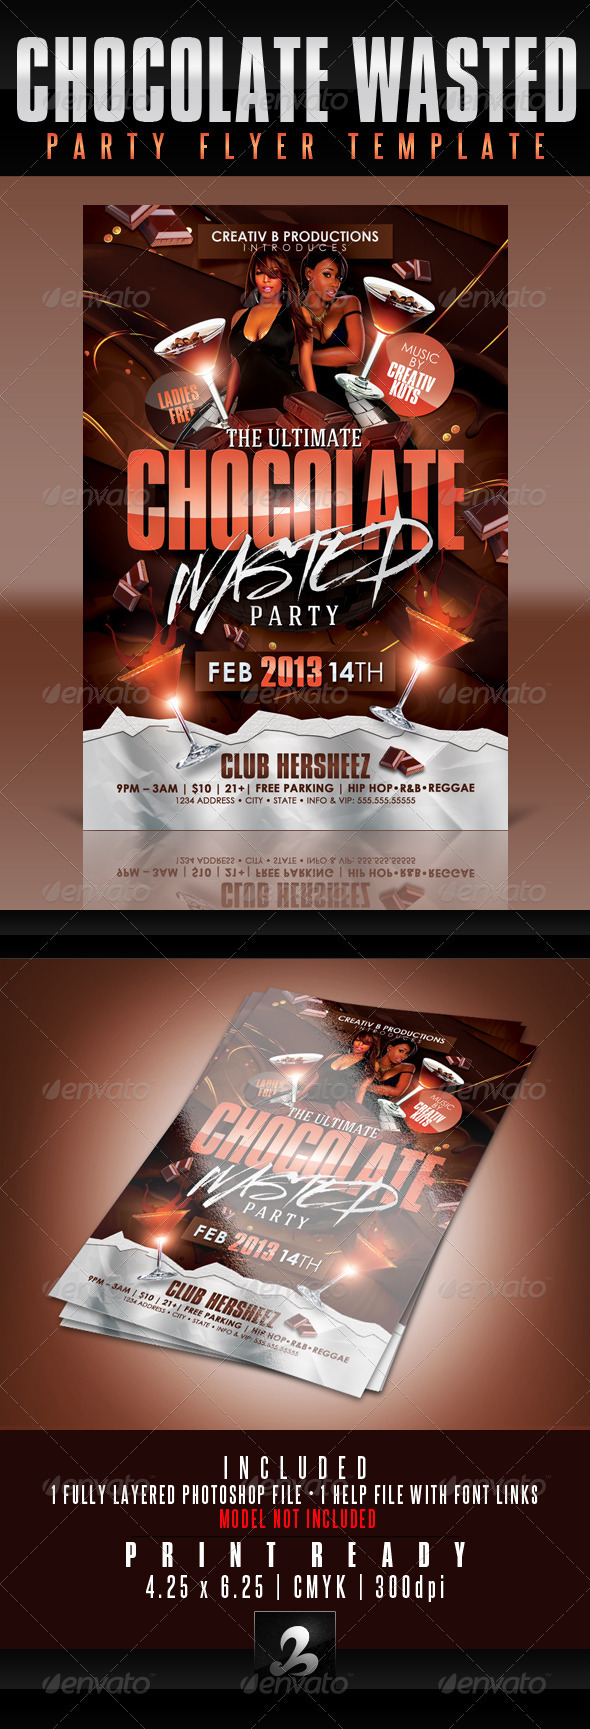 Chocolate Wasted Party Flyer Template | GraphicRiver